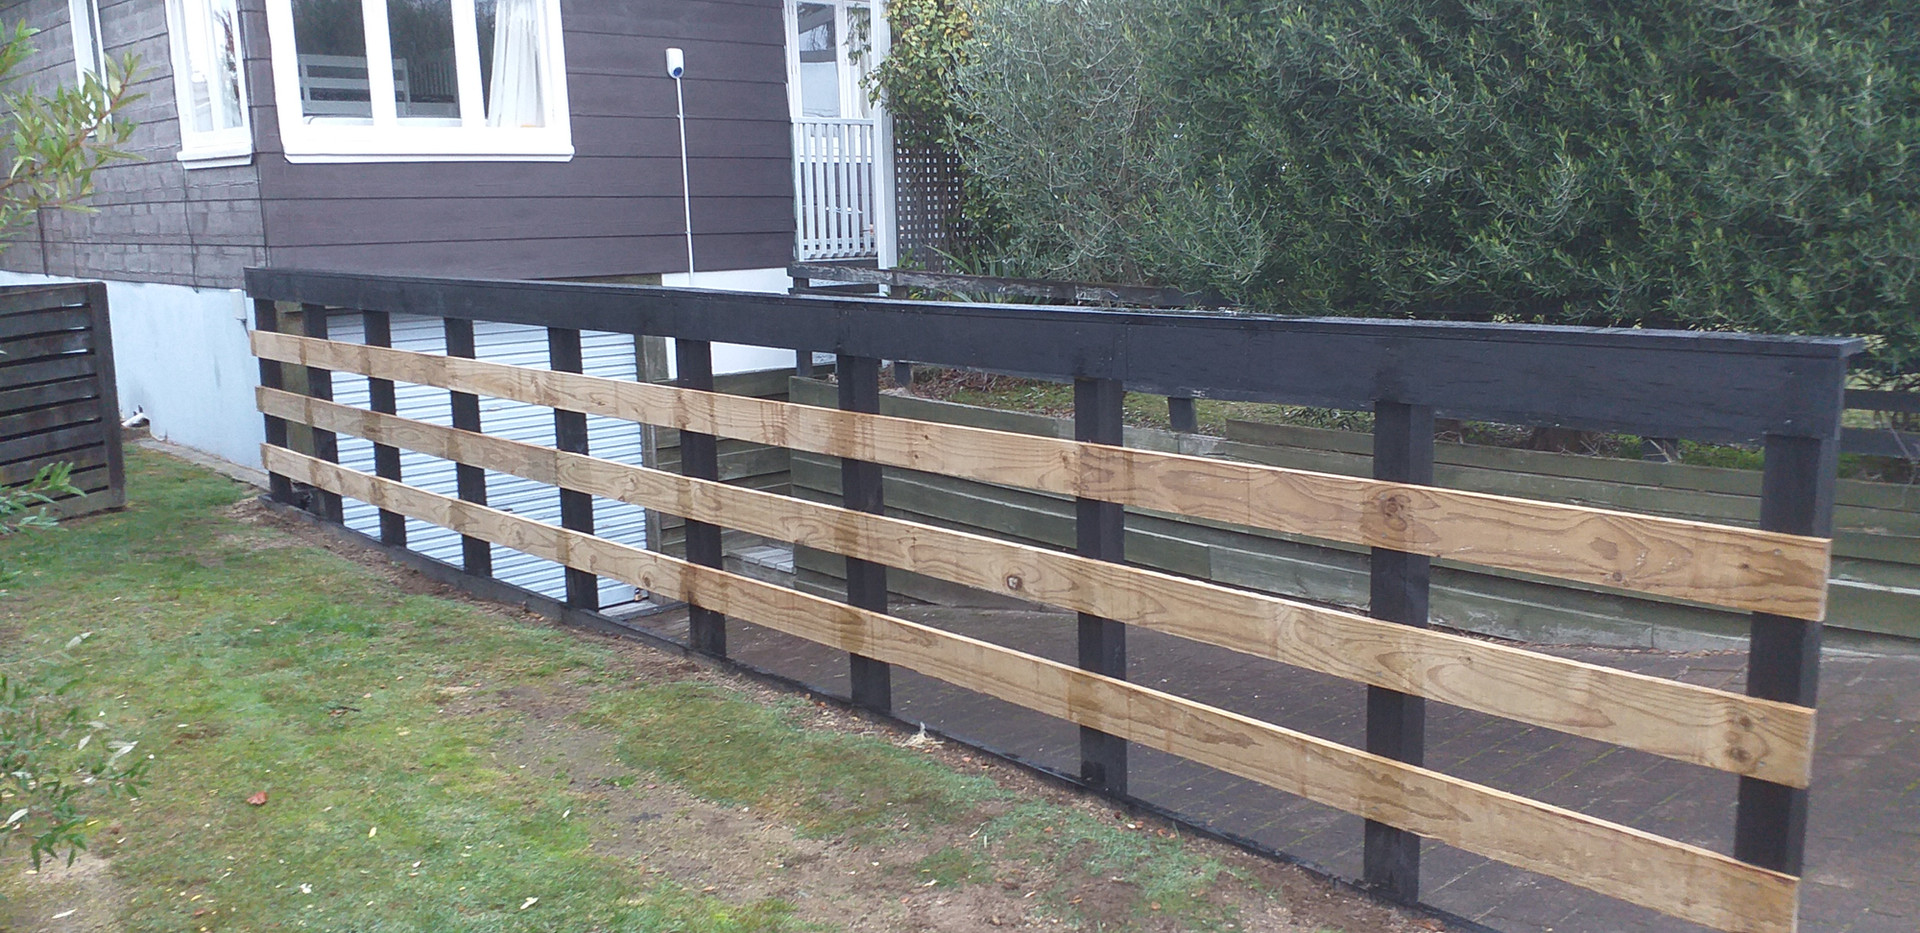 Fence prior to paint